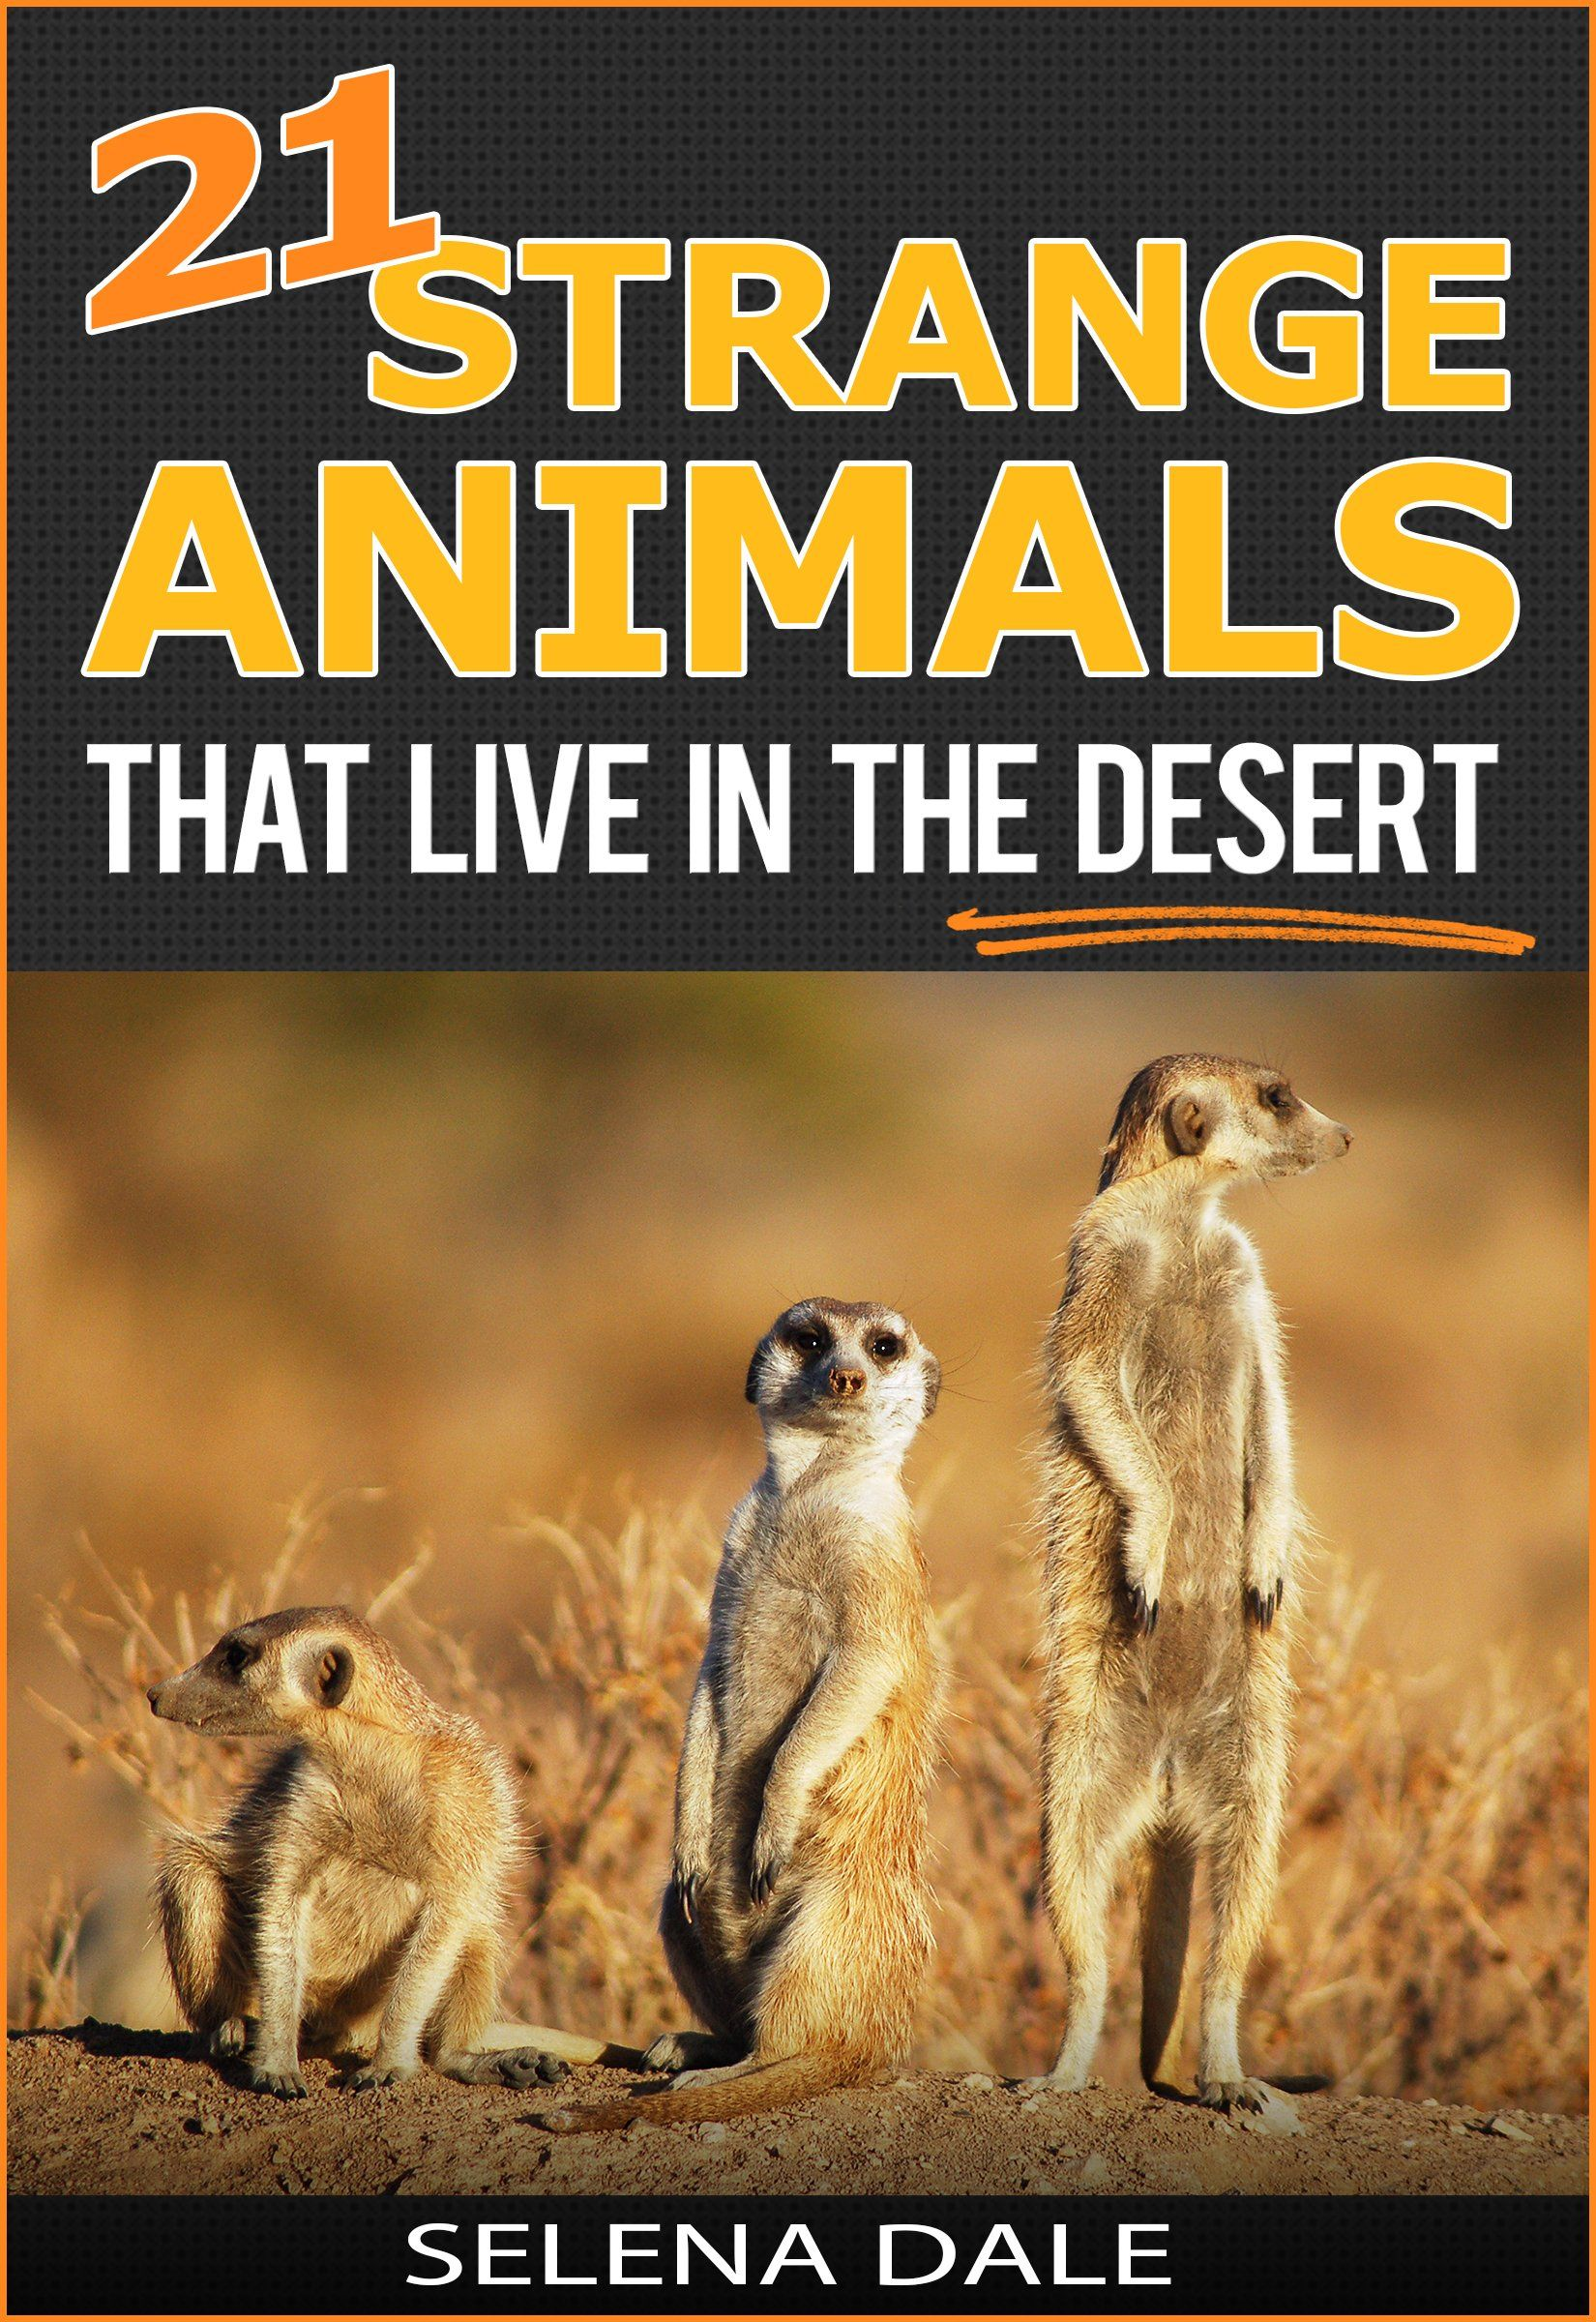 21 Strange Animals That Live In The Desert Extraordinary Animal Photos Facinating Fun Facts For Kids Book Weird Animals Fun Facts For Kids Facts For Kids